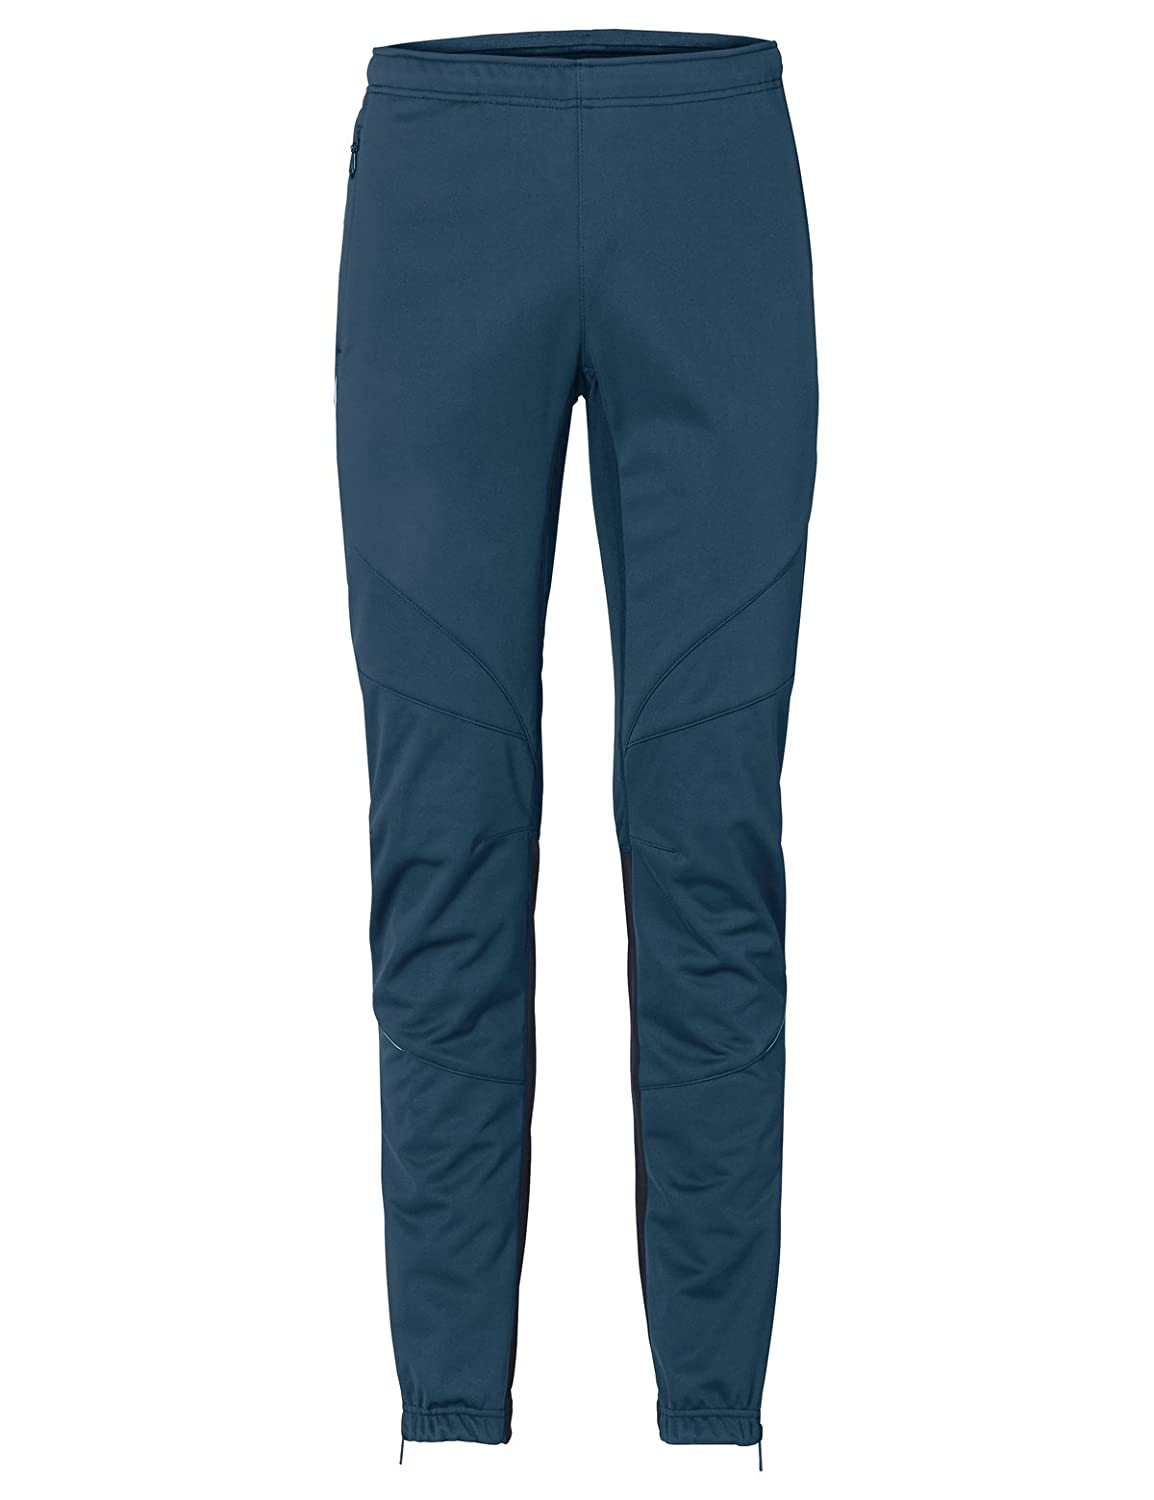 Vaude Herren Wintry Pants Iii